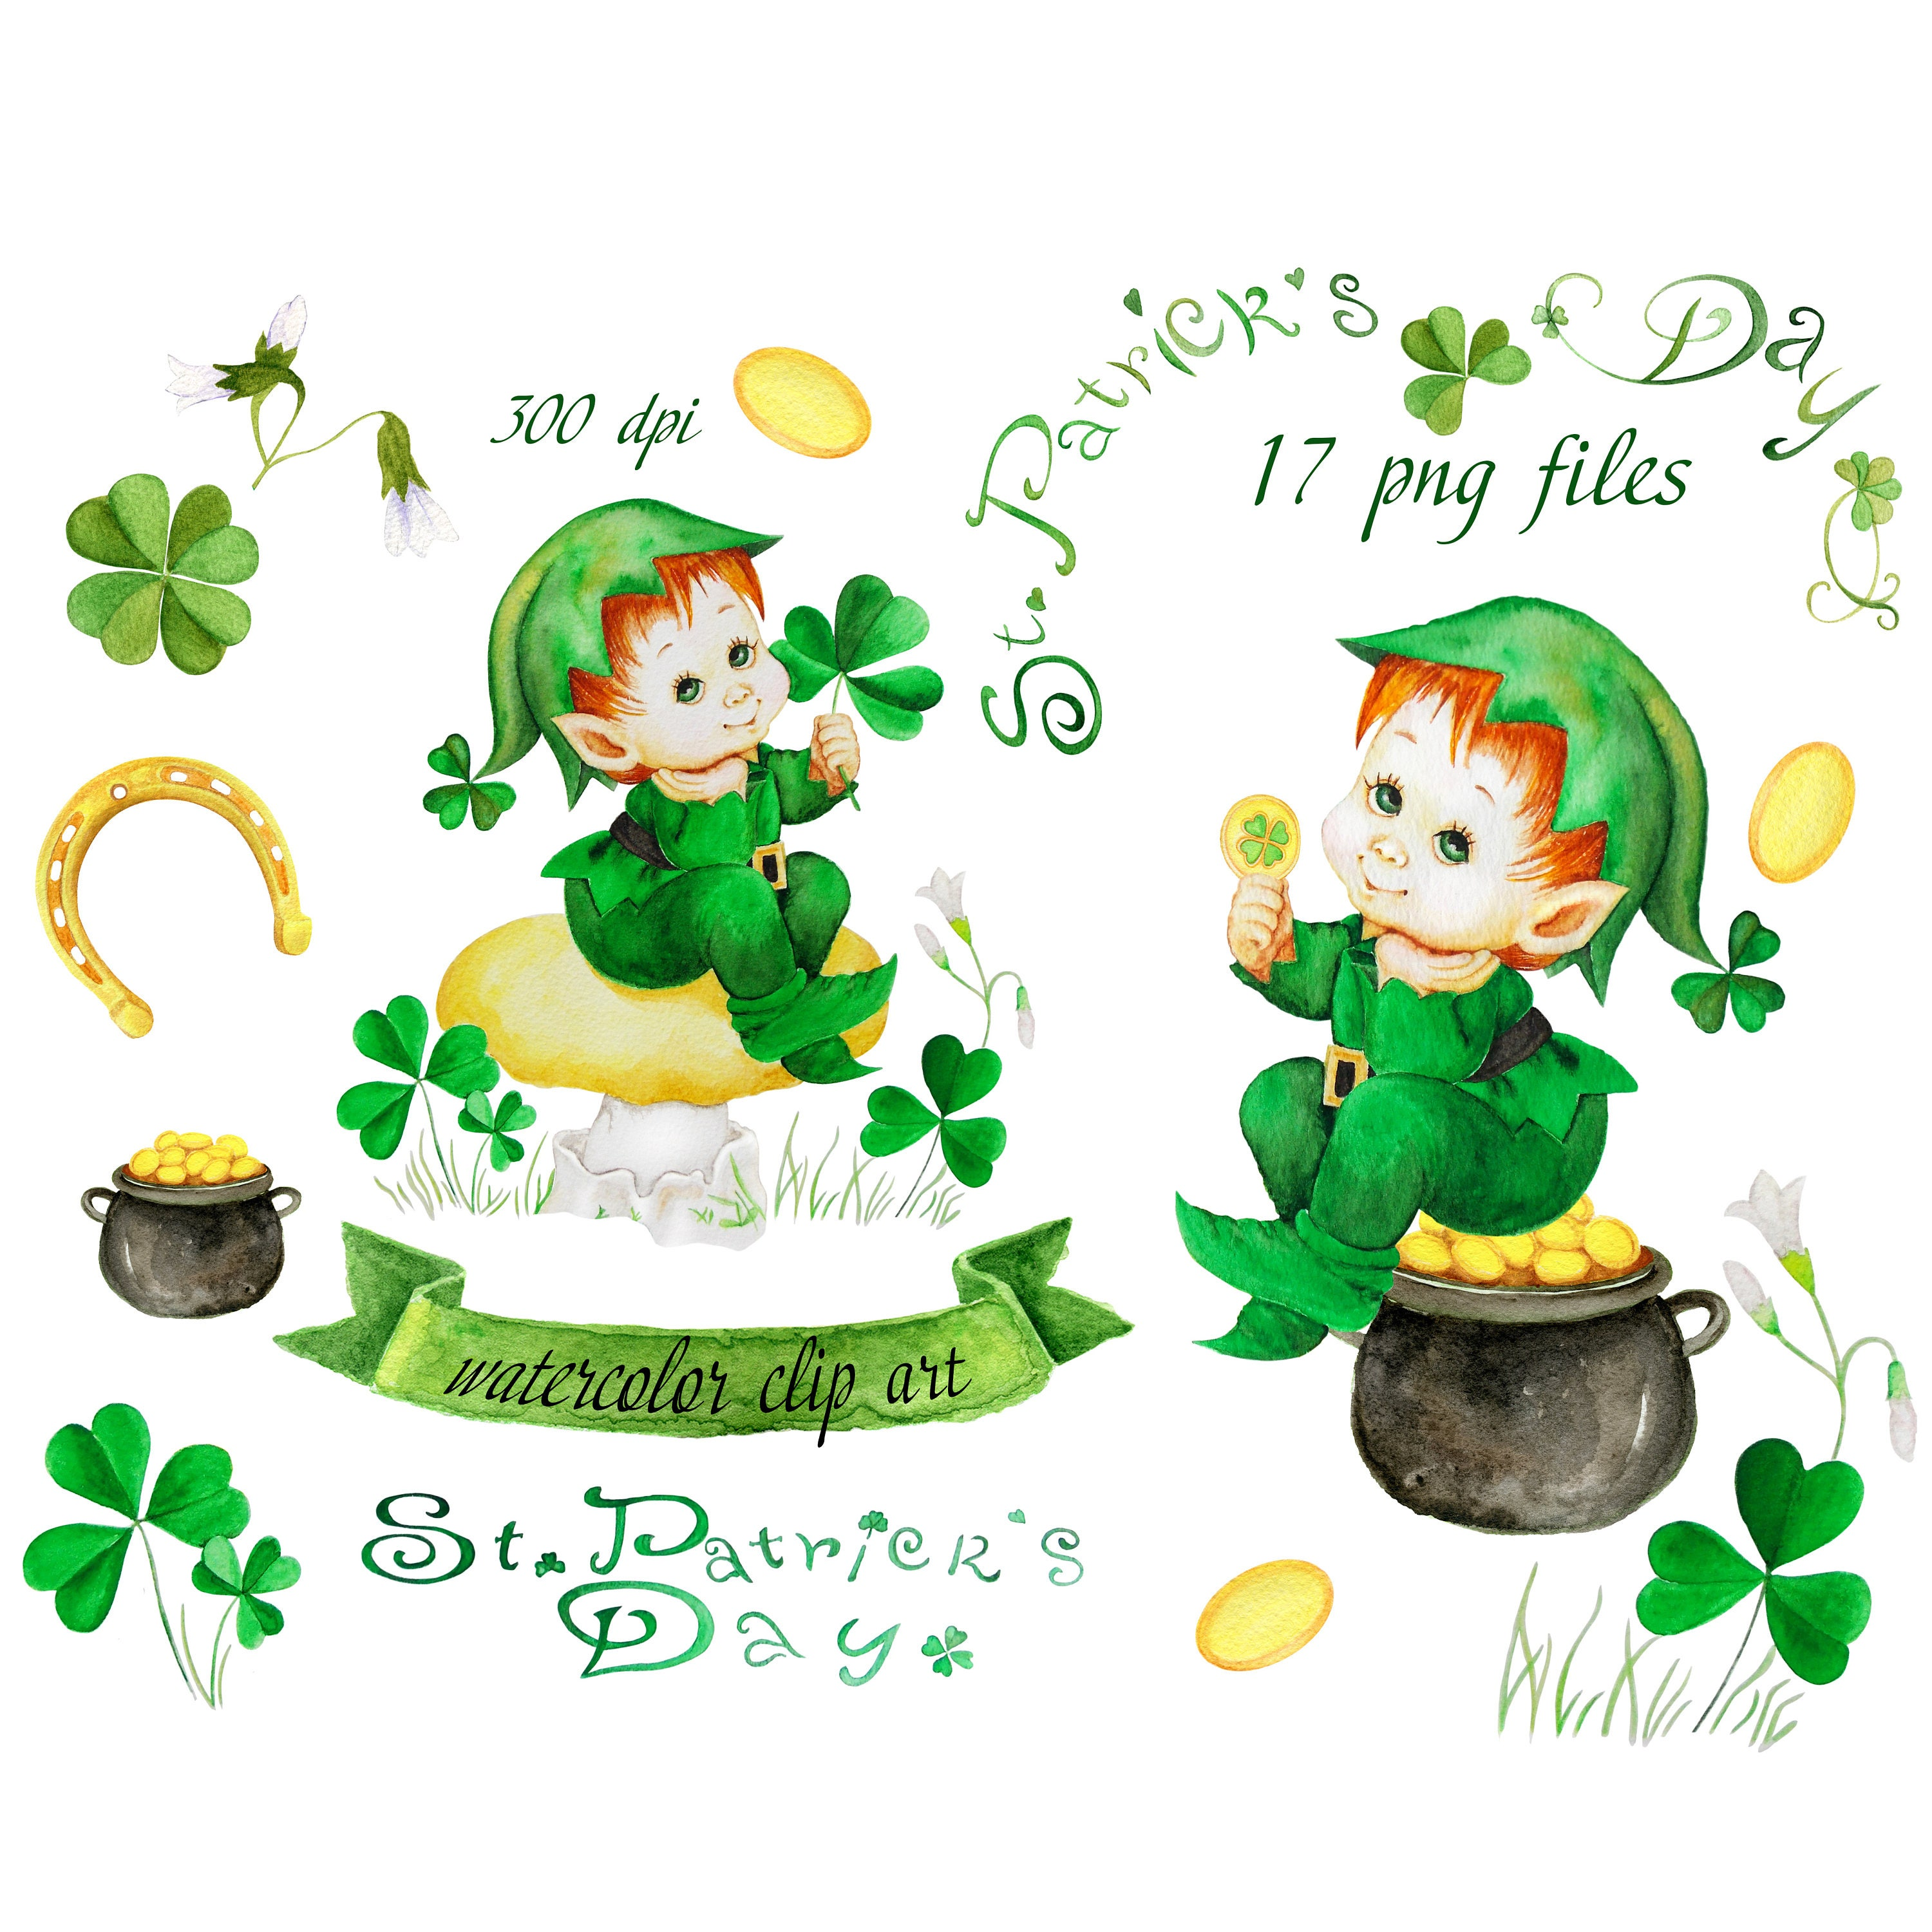 It's just a picture of Candid Free Printable Clipart for St Patrick's Day